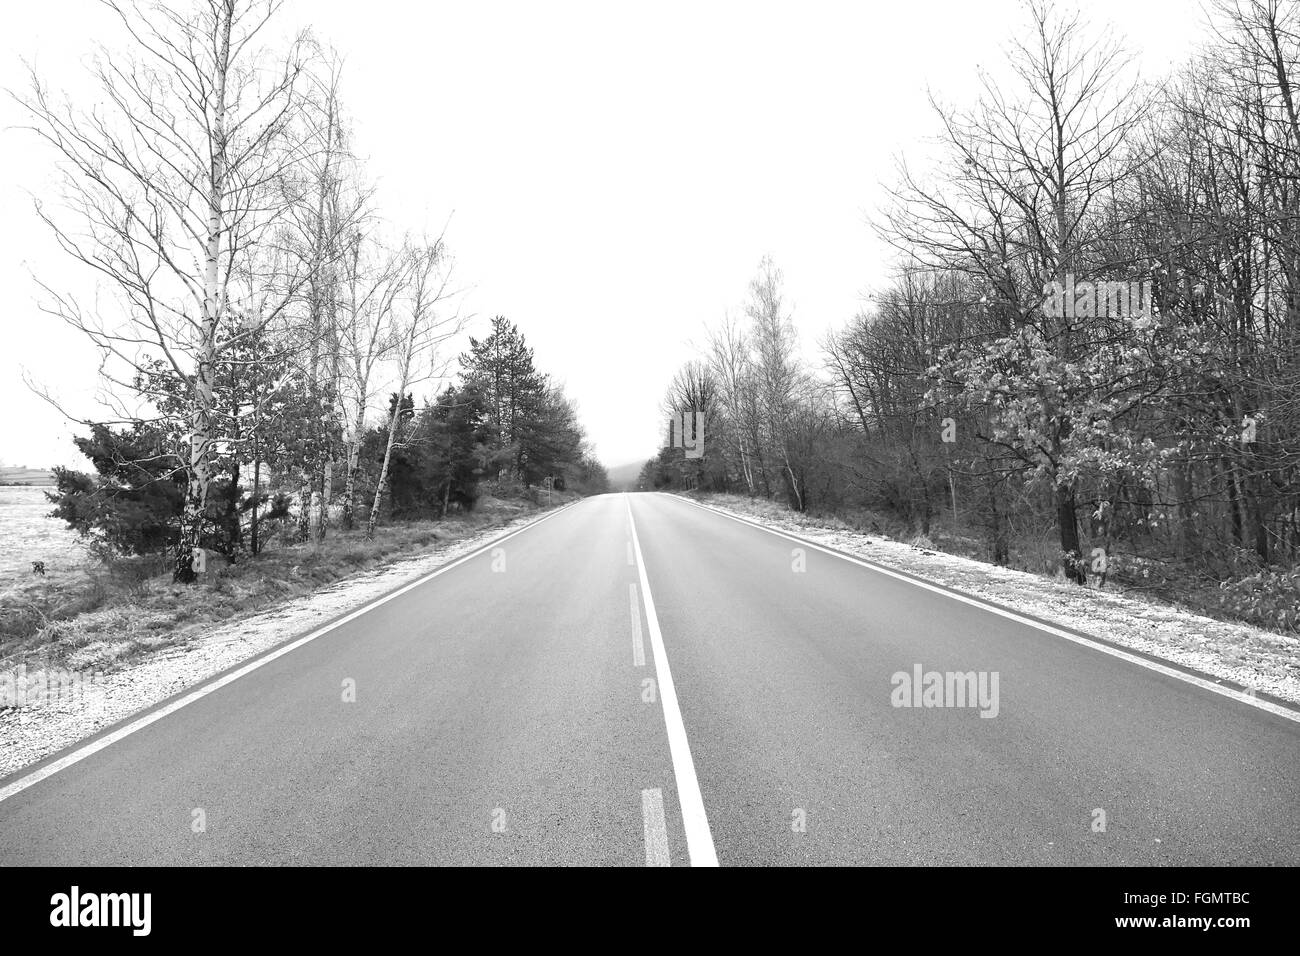 Winter landscape with a road. - Stock Image